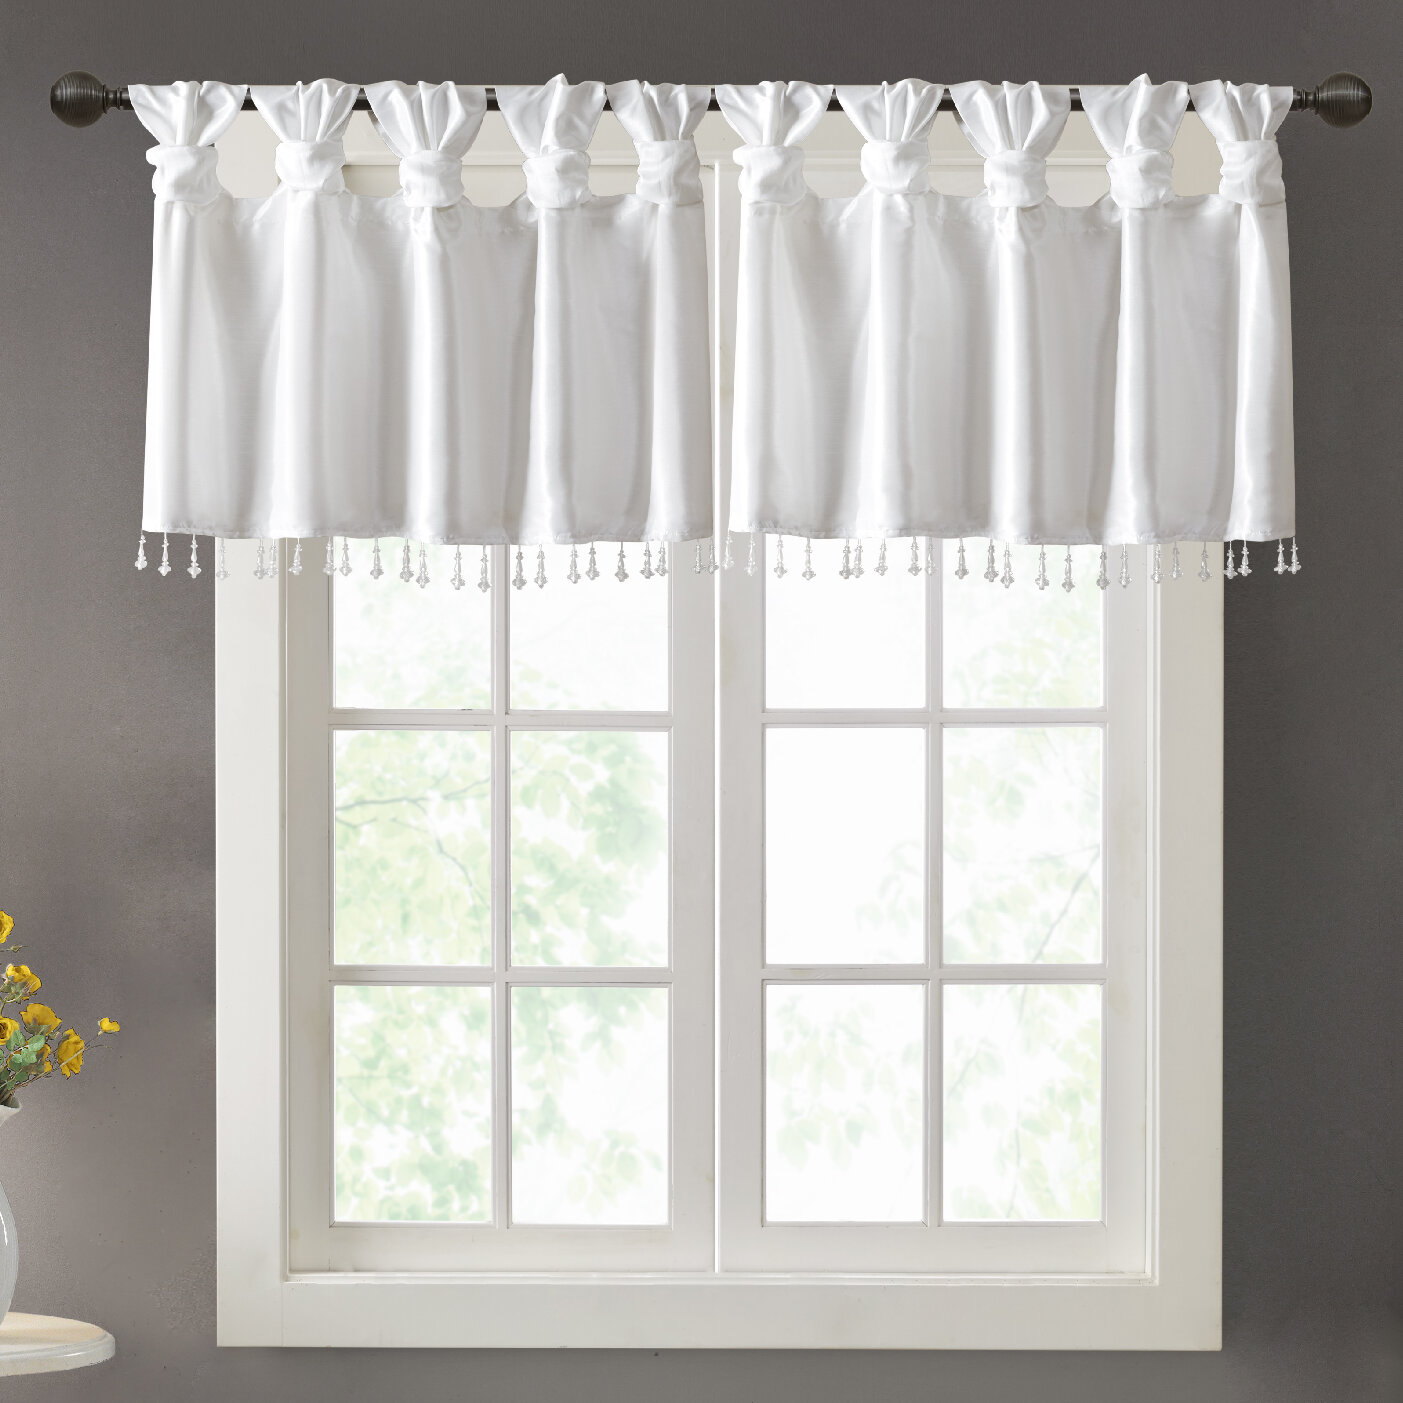 Peachy Farmhouse Rustic Valances Birch Lane Download Free Architecture Designs Estepponolmadebymaigaardcom